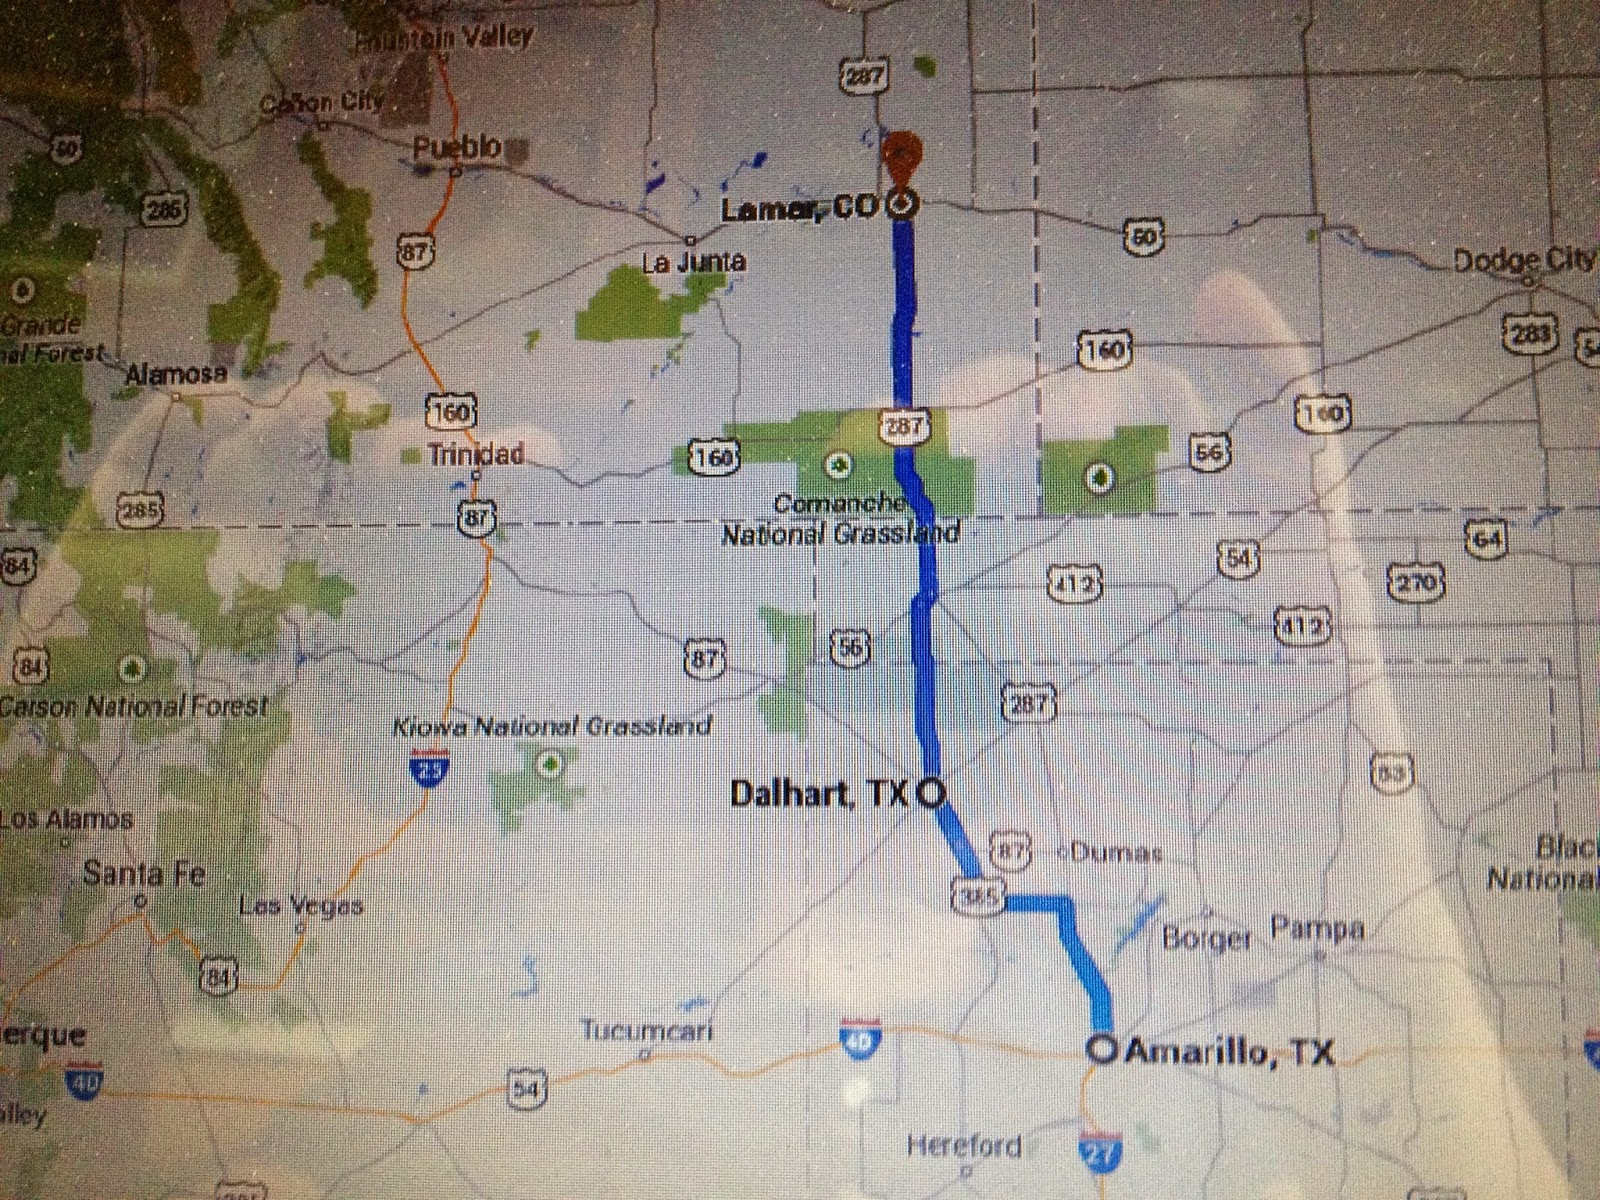 Teri's World: Dalhart, TX and Lamar, CO on